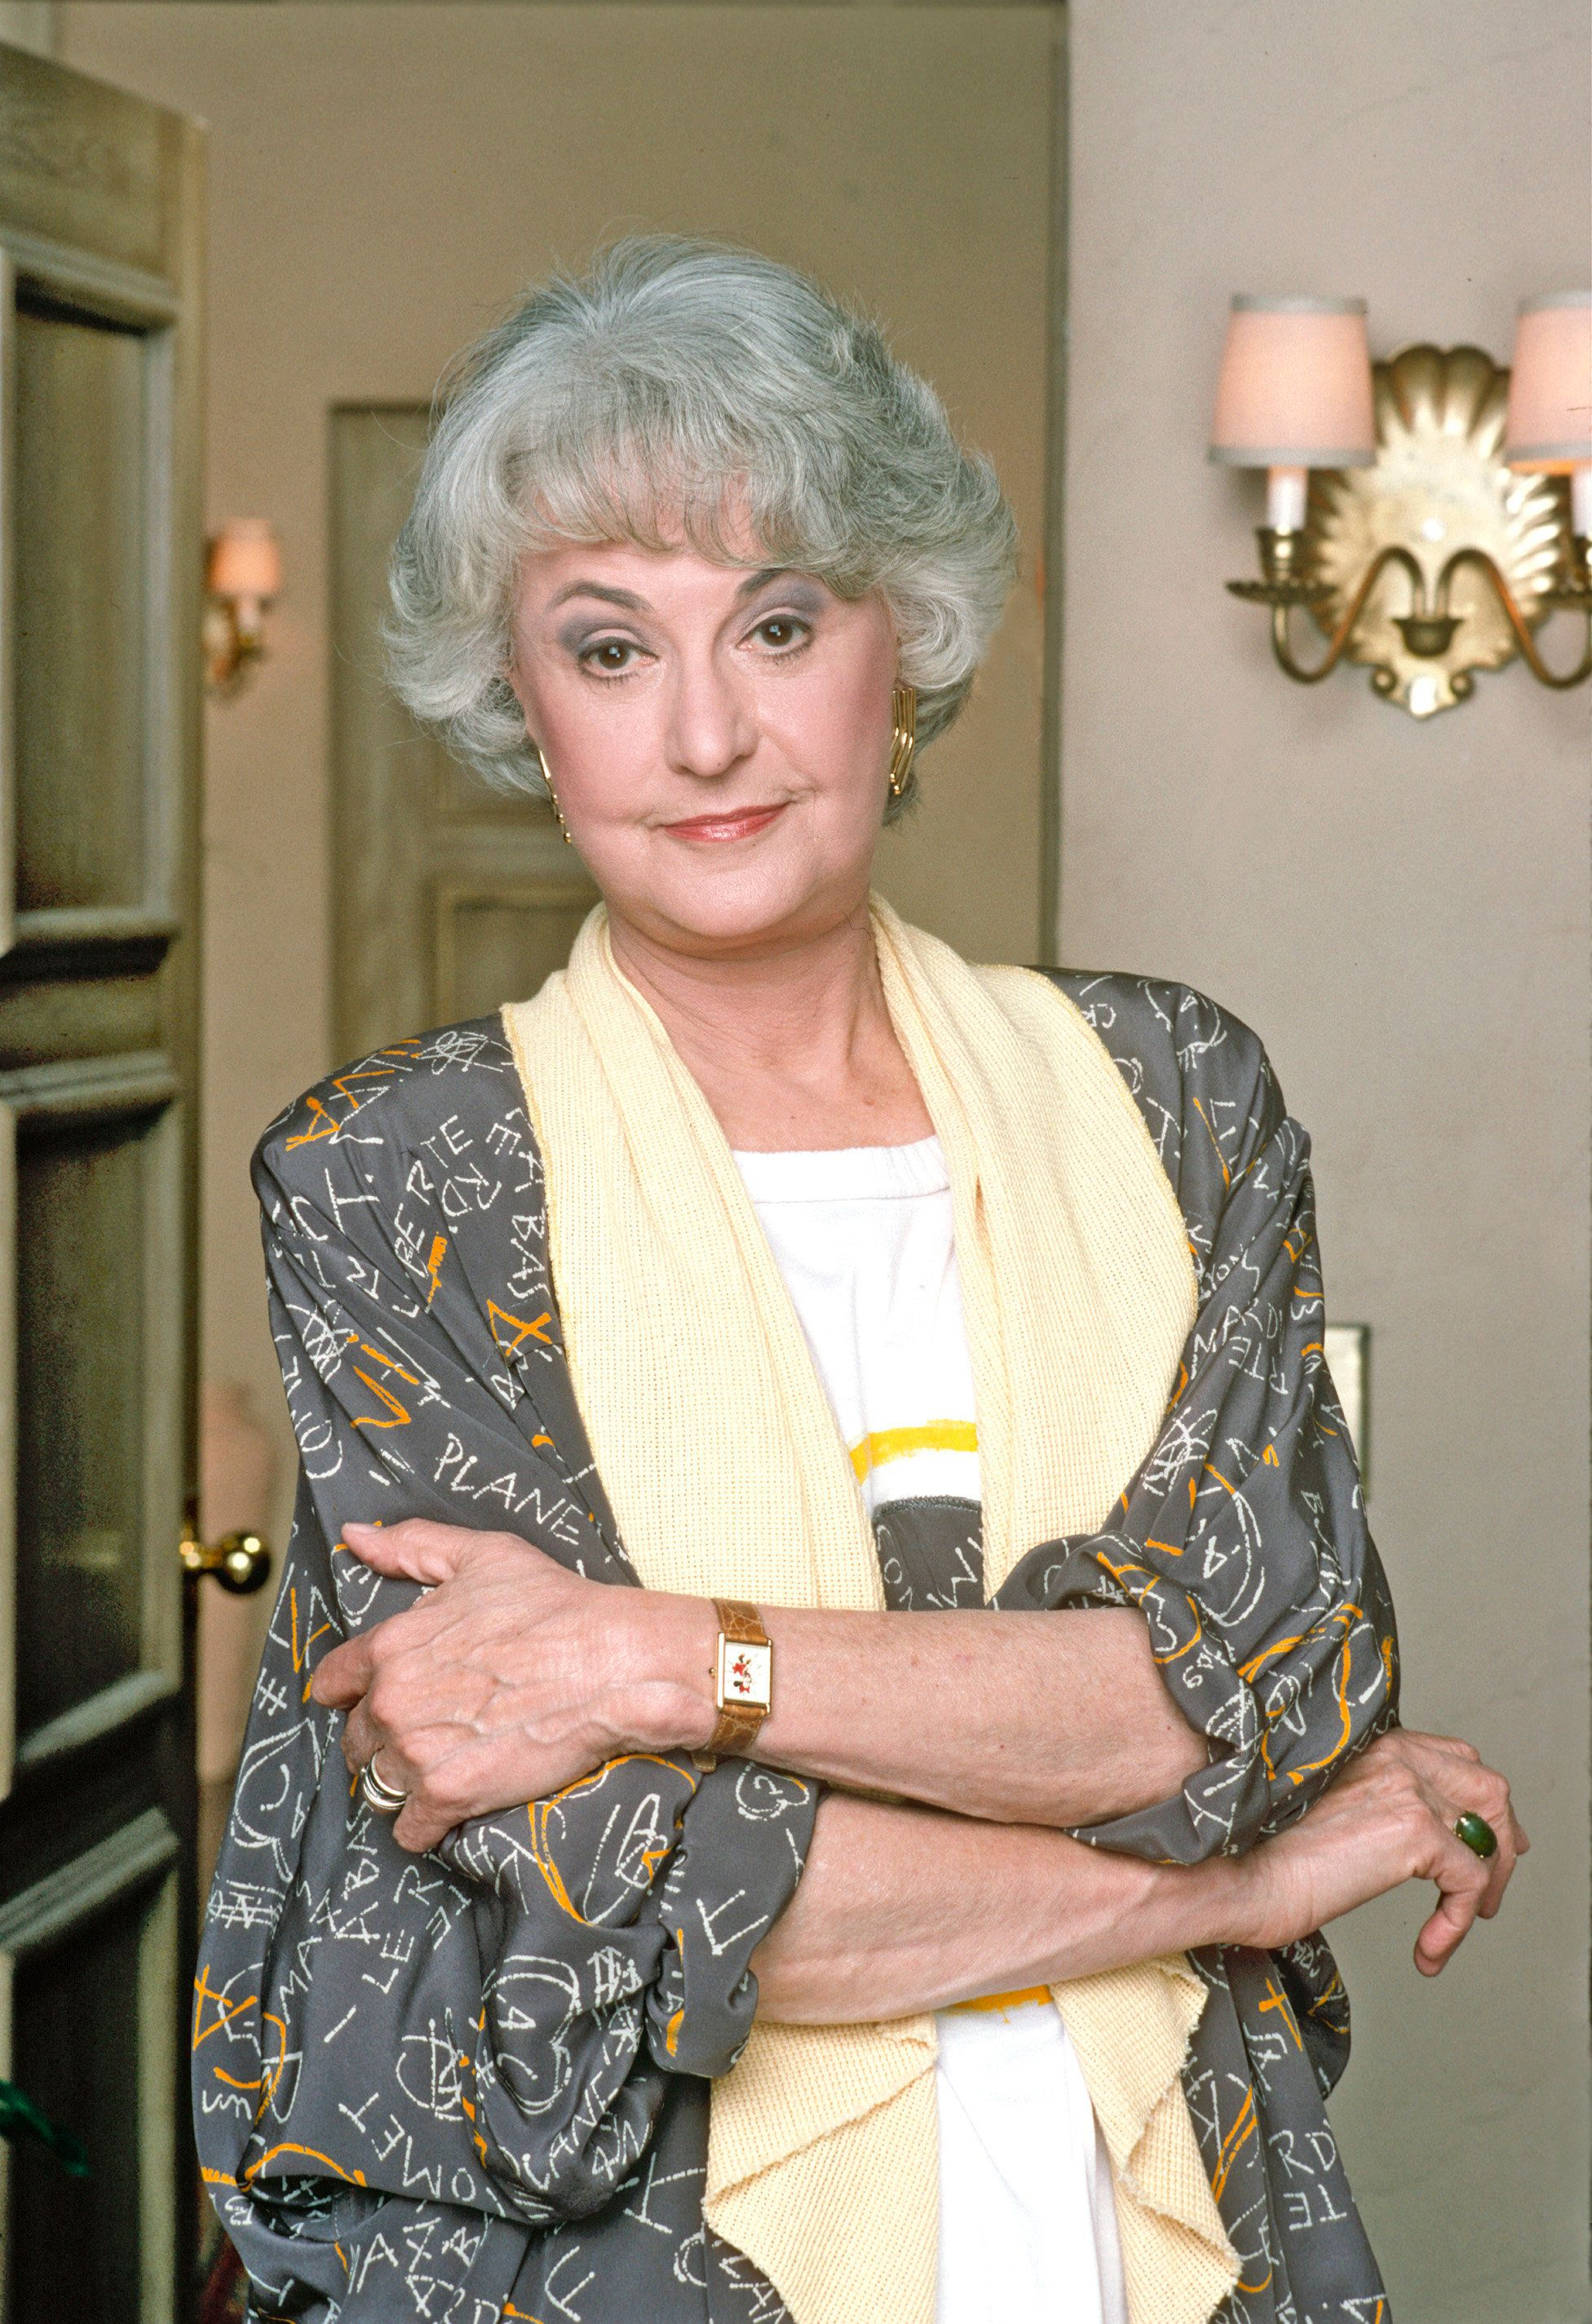 """Golden Girls"" star Bea Arthur was a staunch LGBTQ rights advocate during her lifetime."